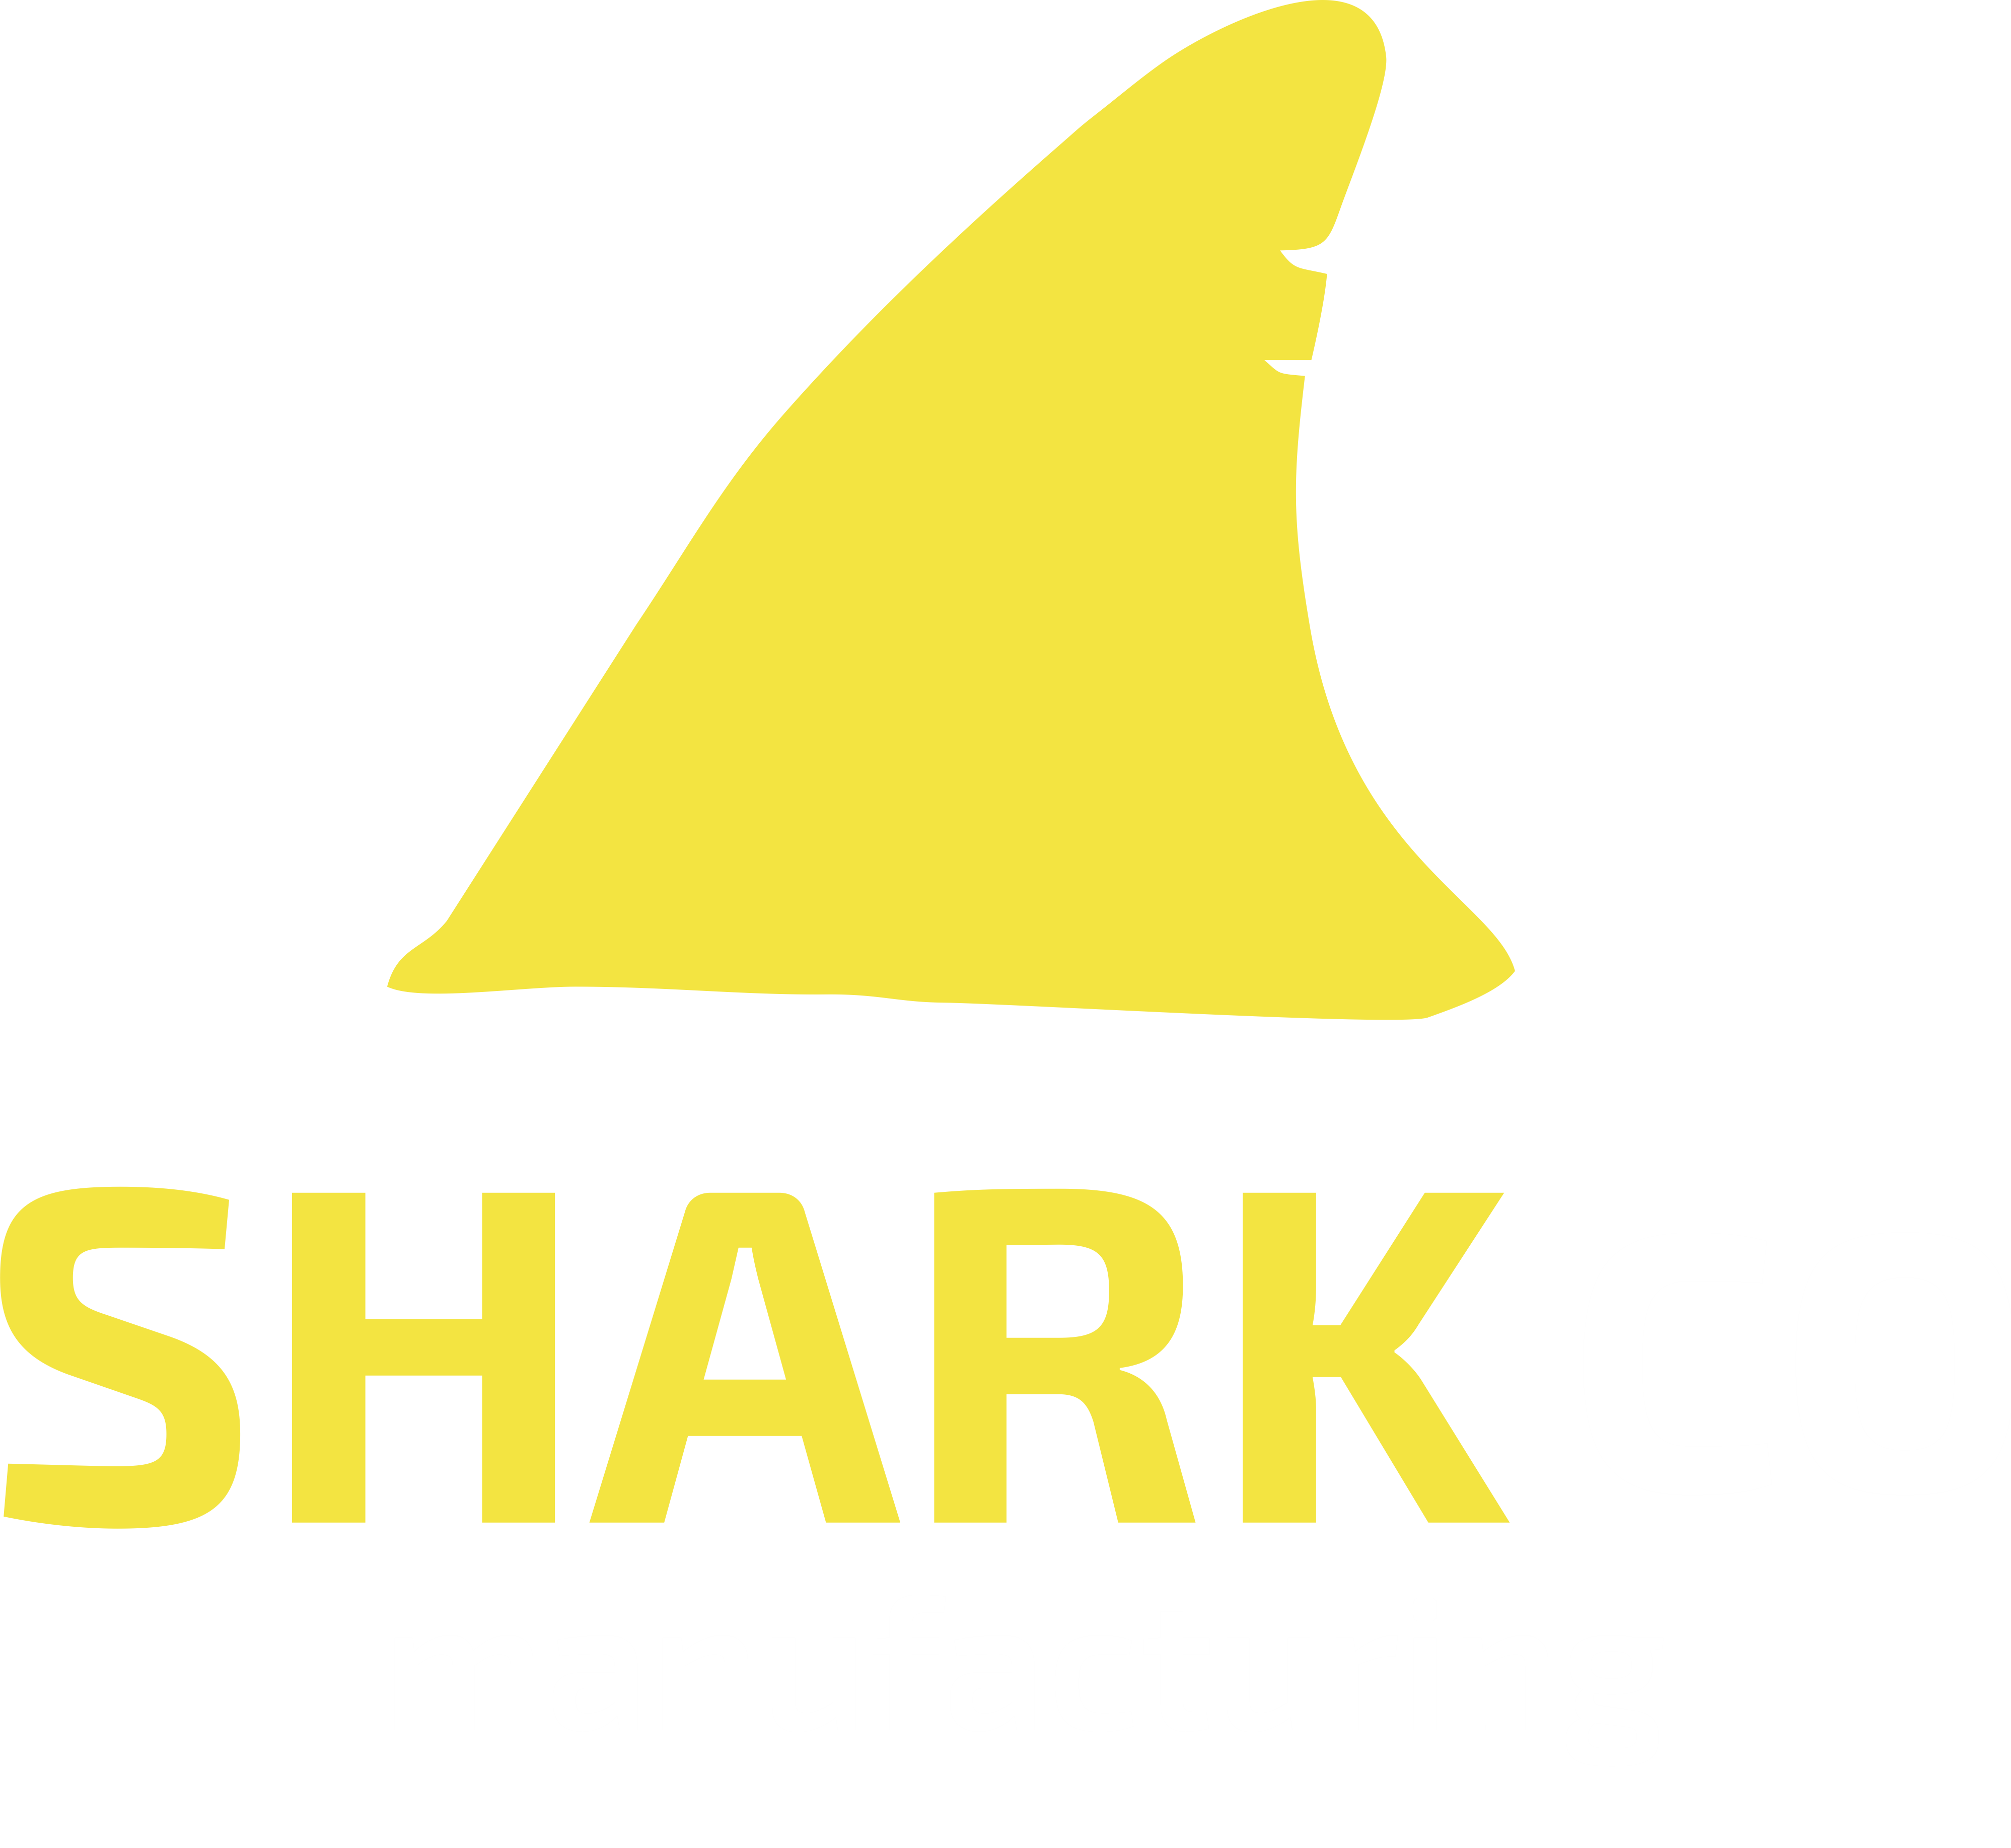 Shark-Co Manufacturing